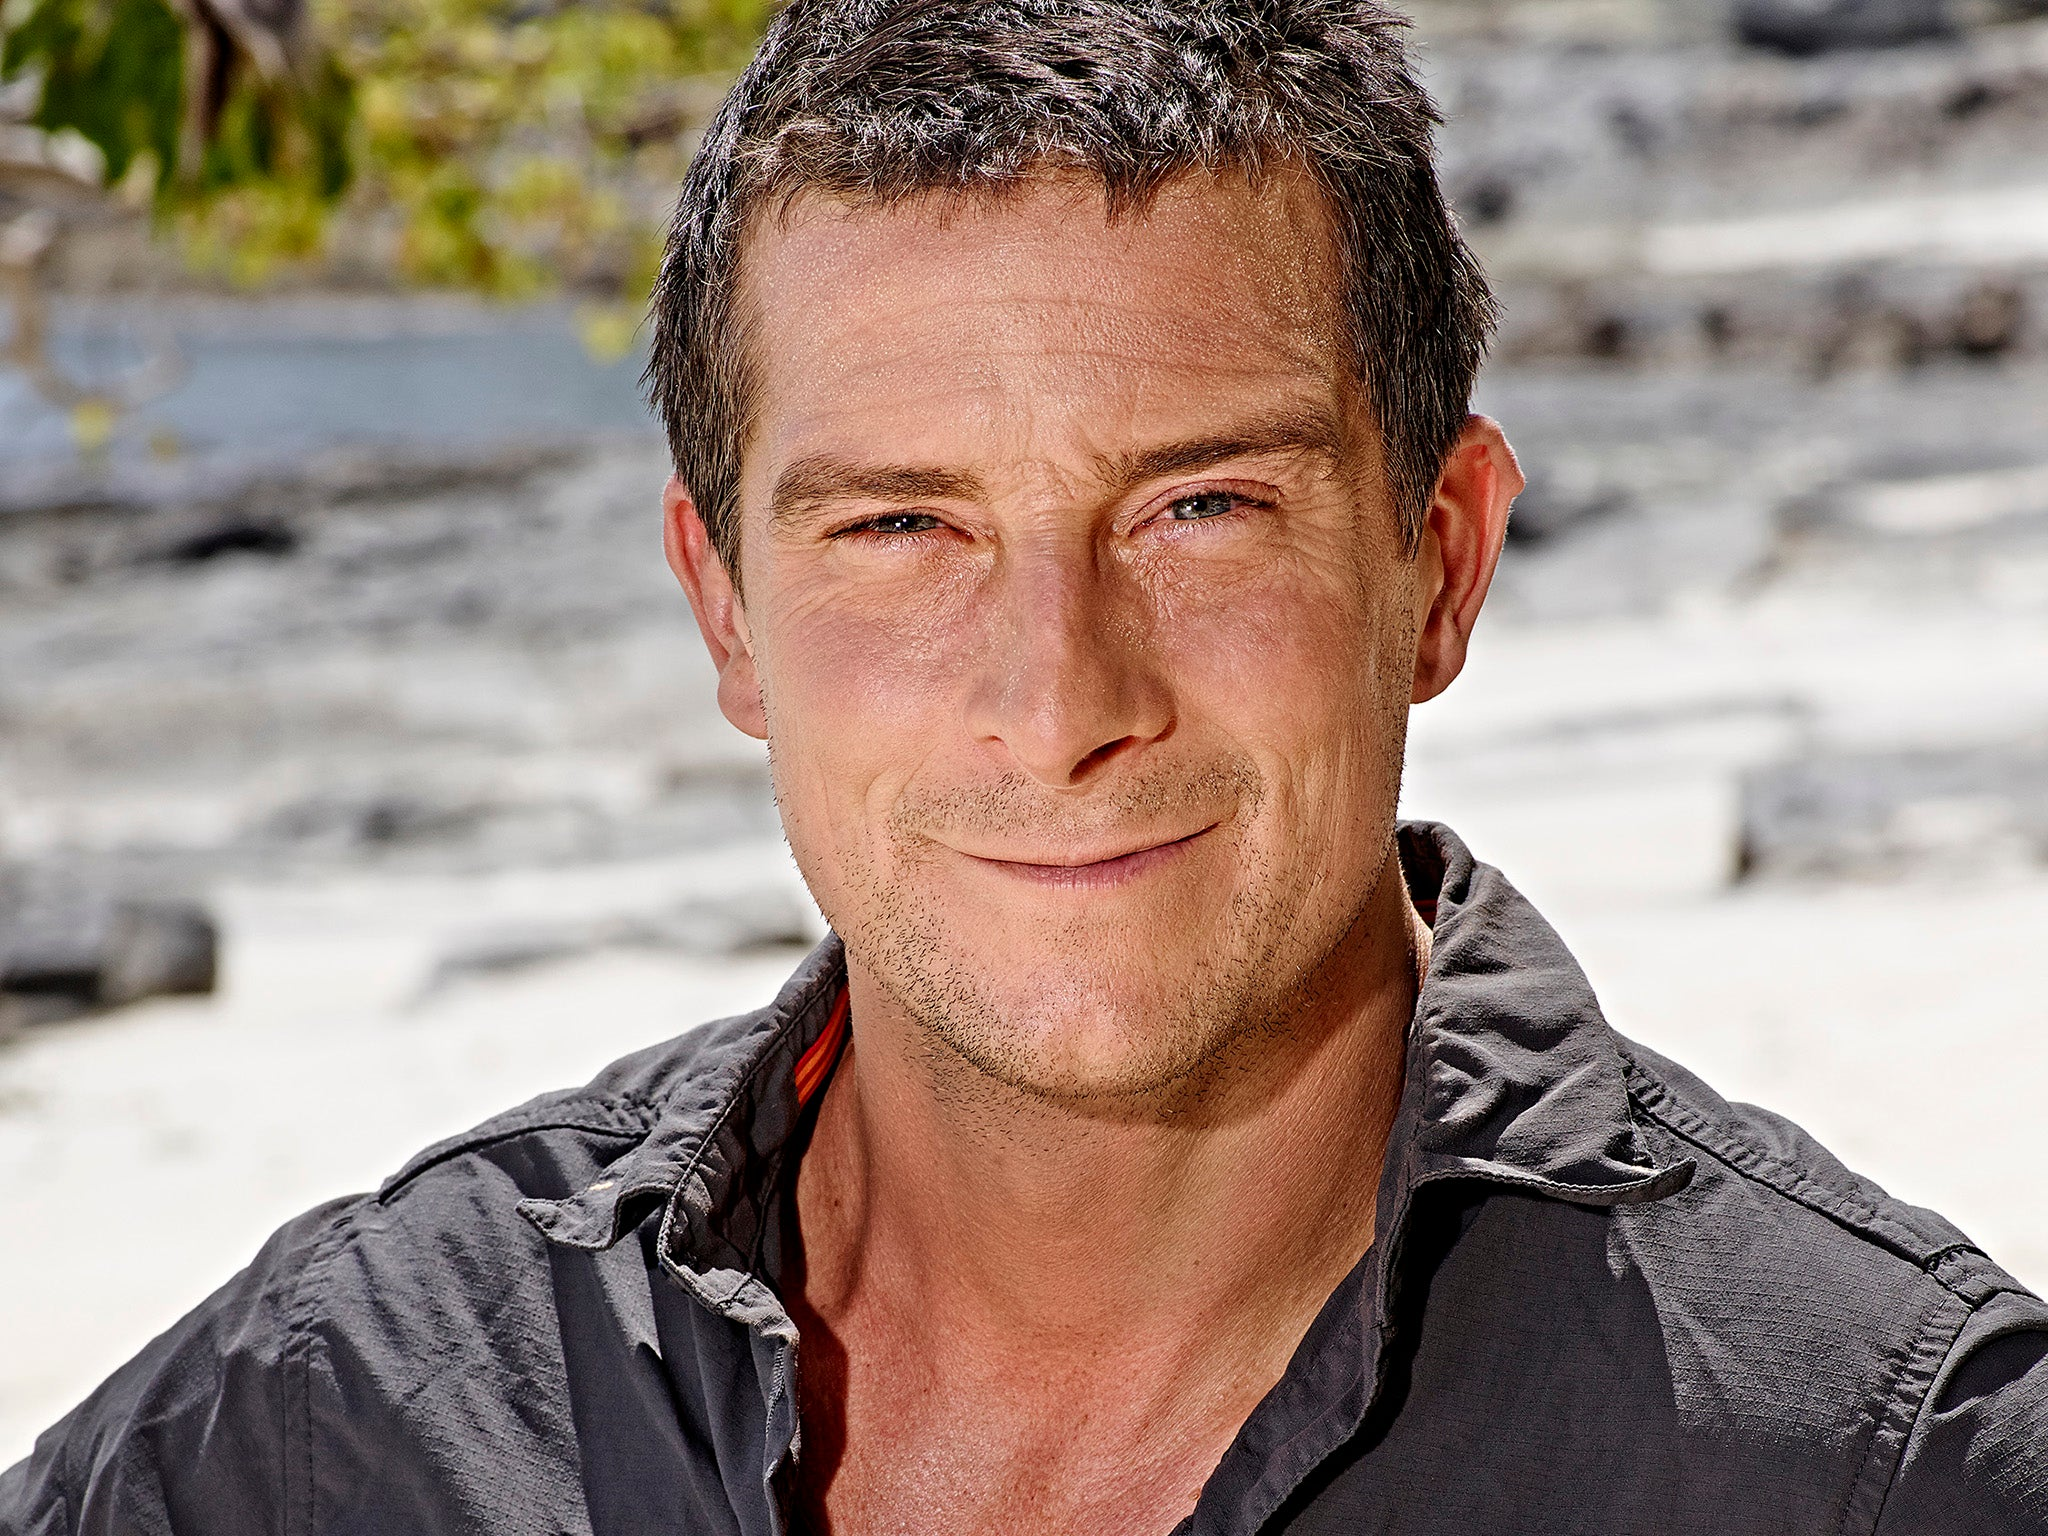 Bear Grylls could be fined for killing and boiling protected frog in Bulgaria